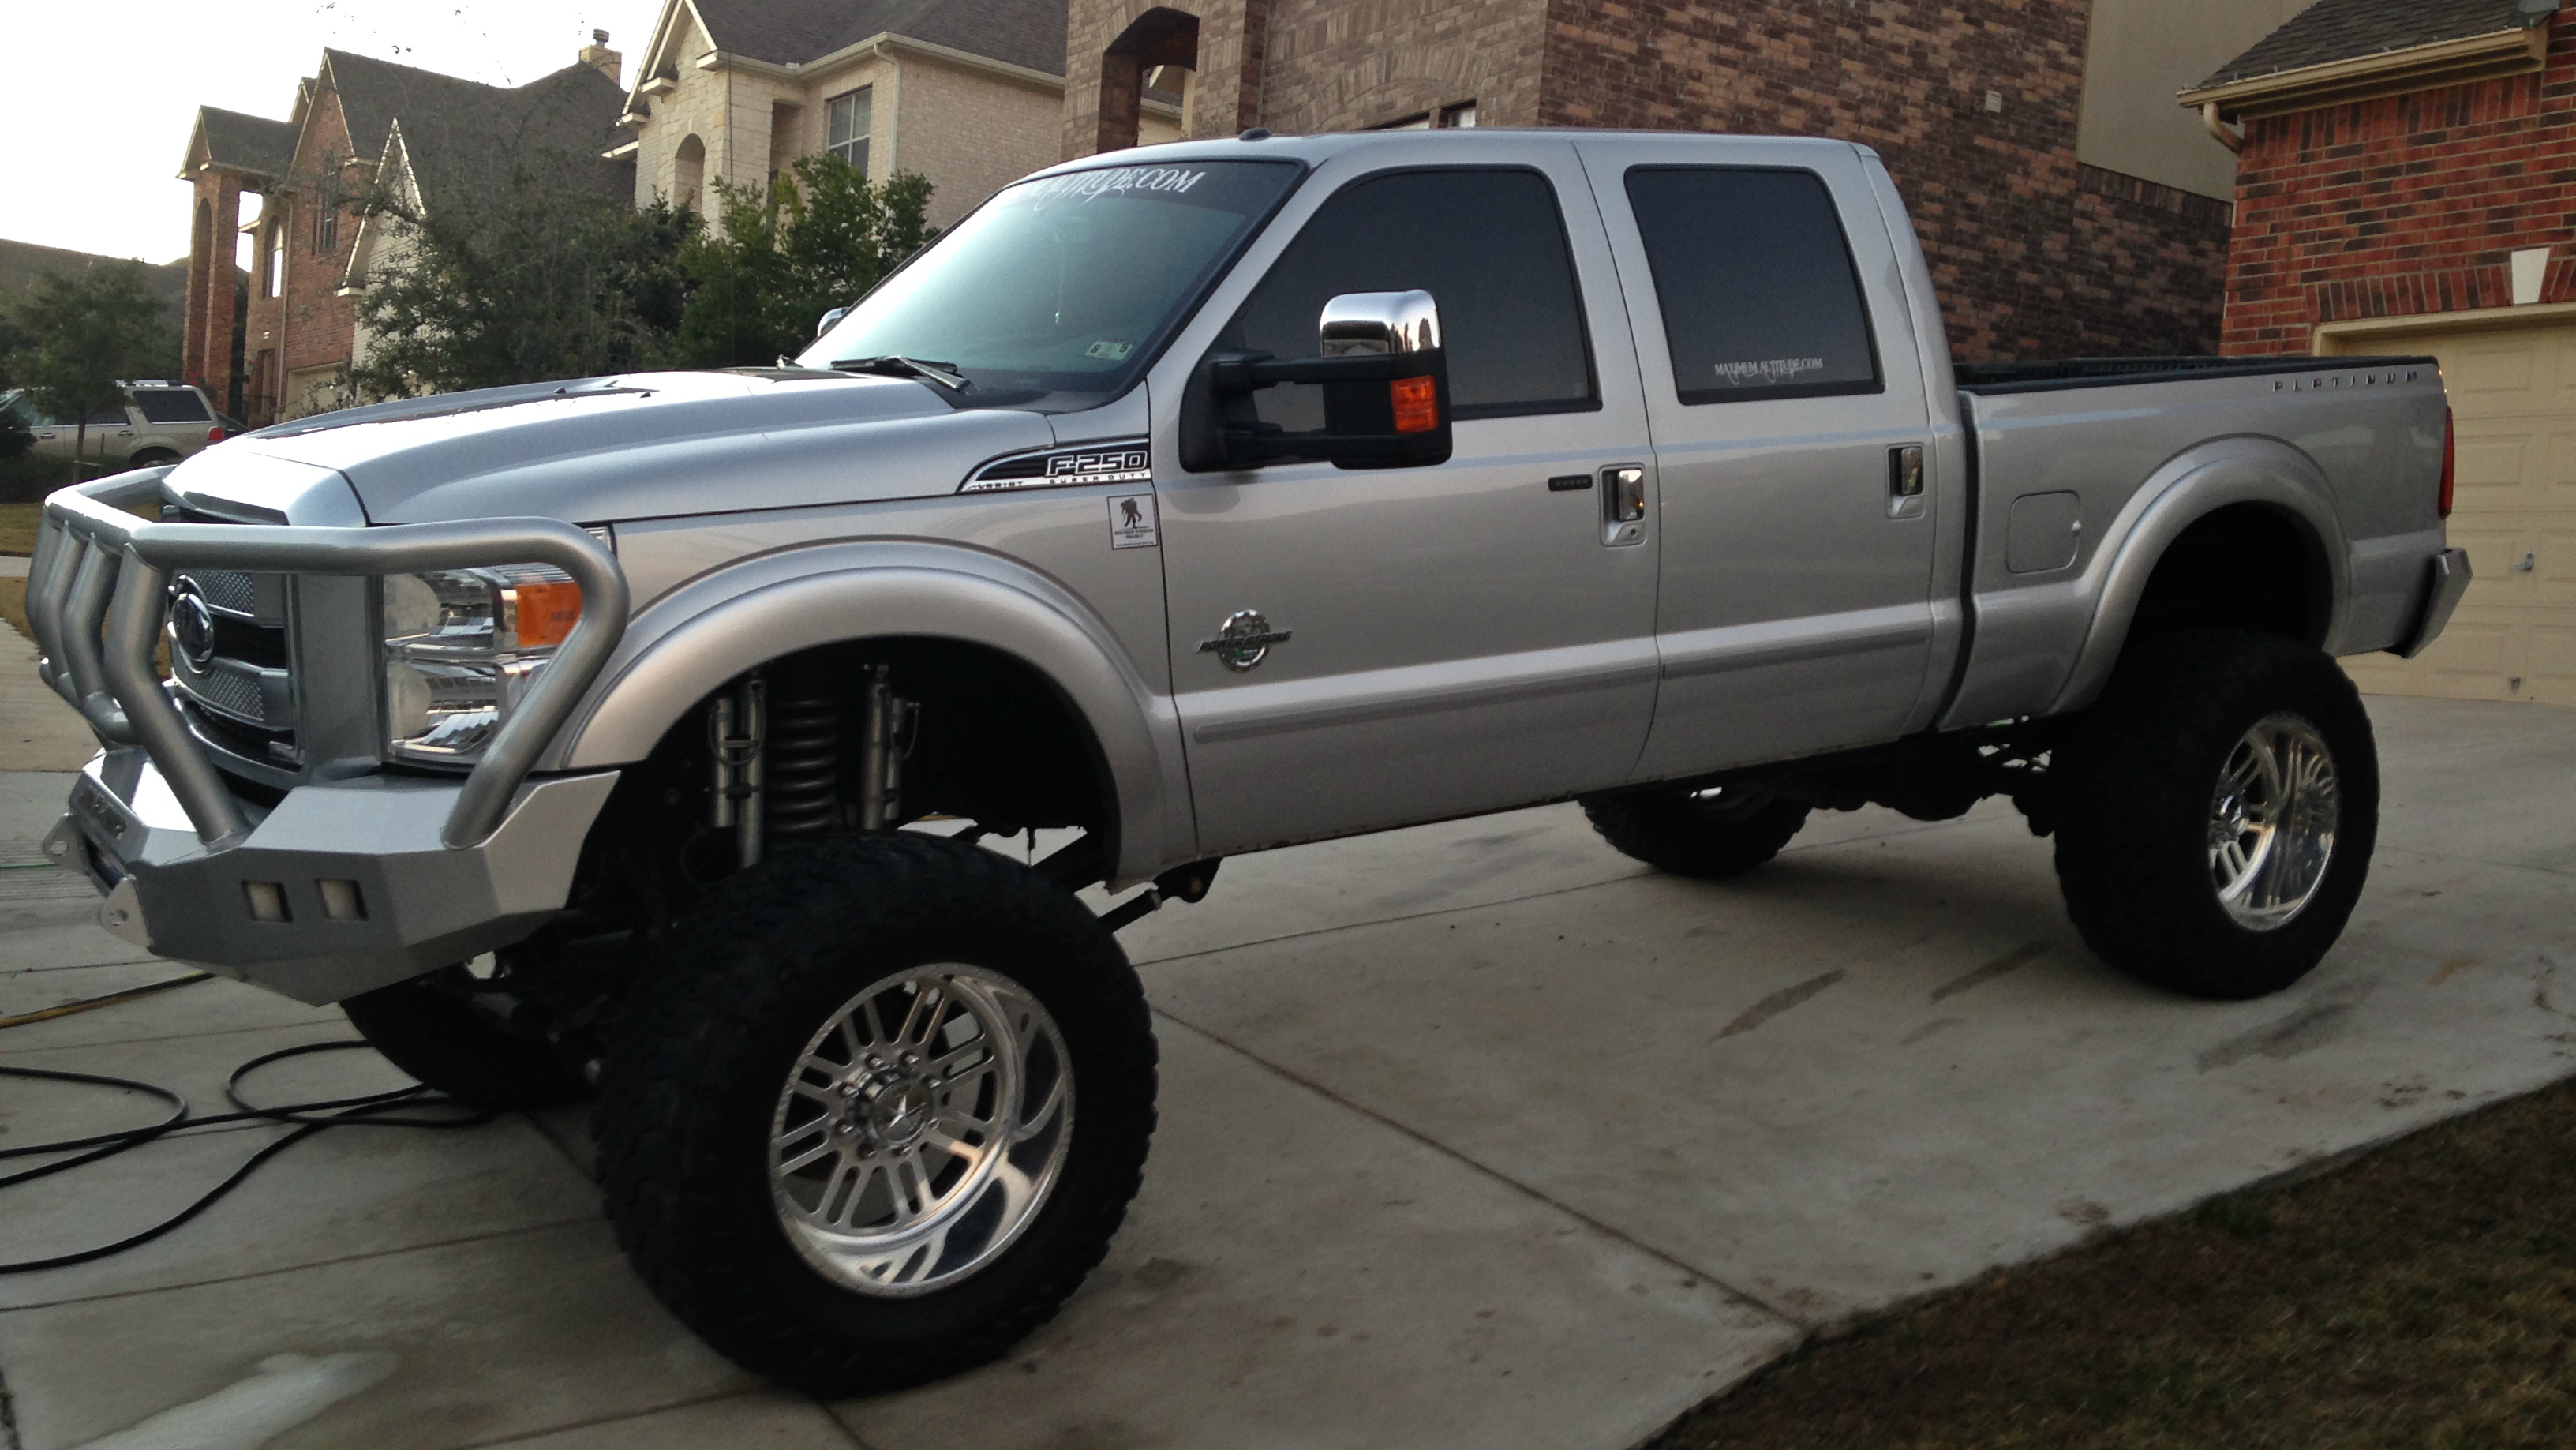 14 F250 Platinum 12 Susp, 40x1550x22 Toyo MT on AMF 22x14 wheels